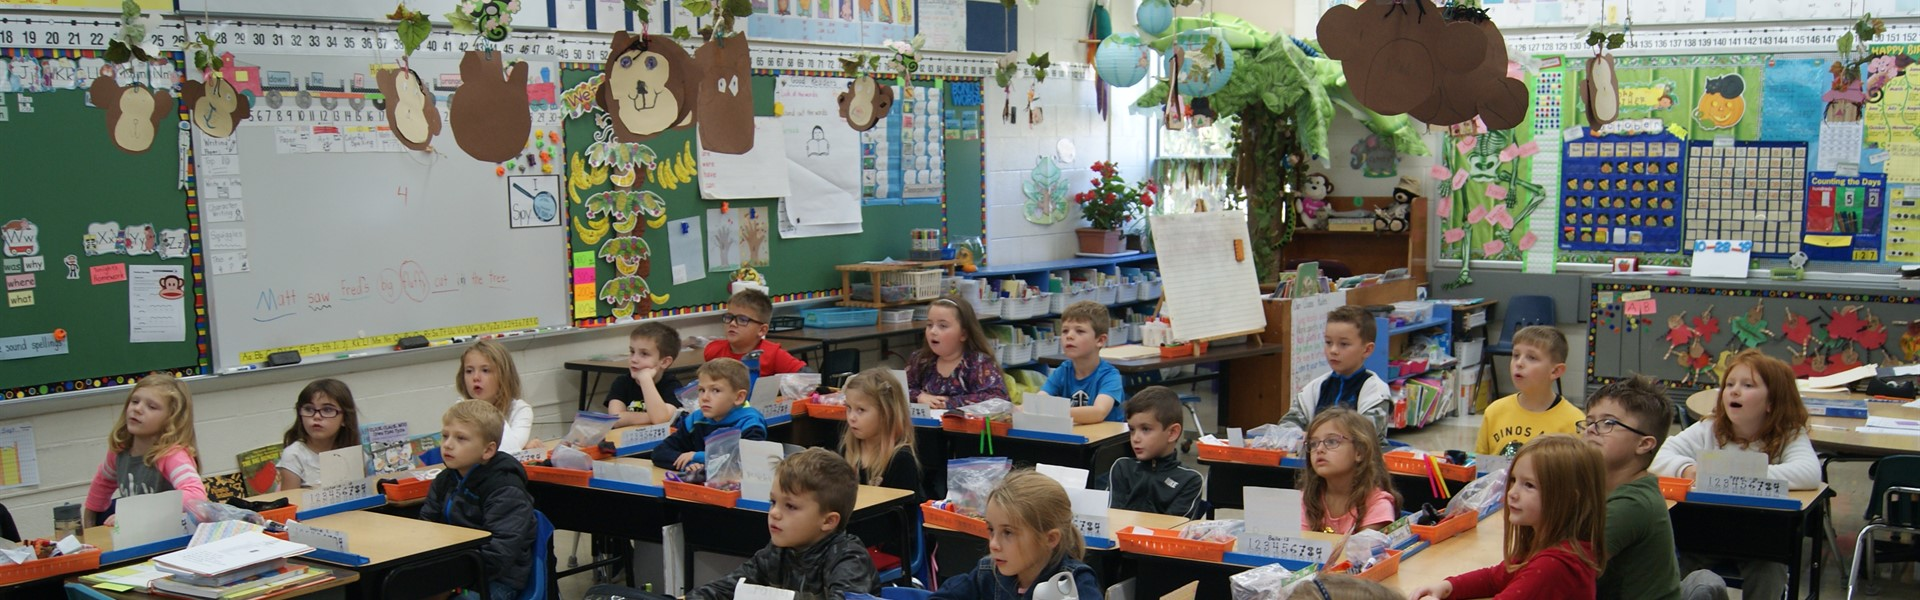 students in 1st grade sitting in desks in a bright, colorful classroom